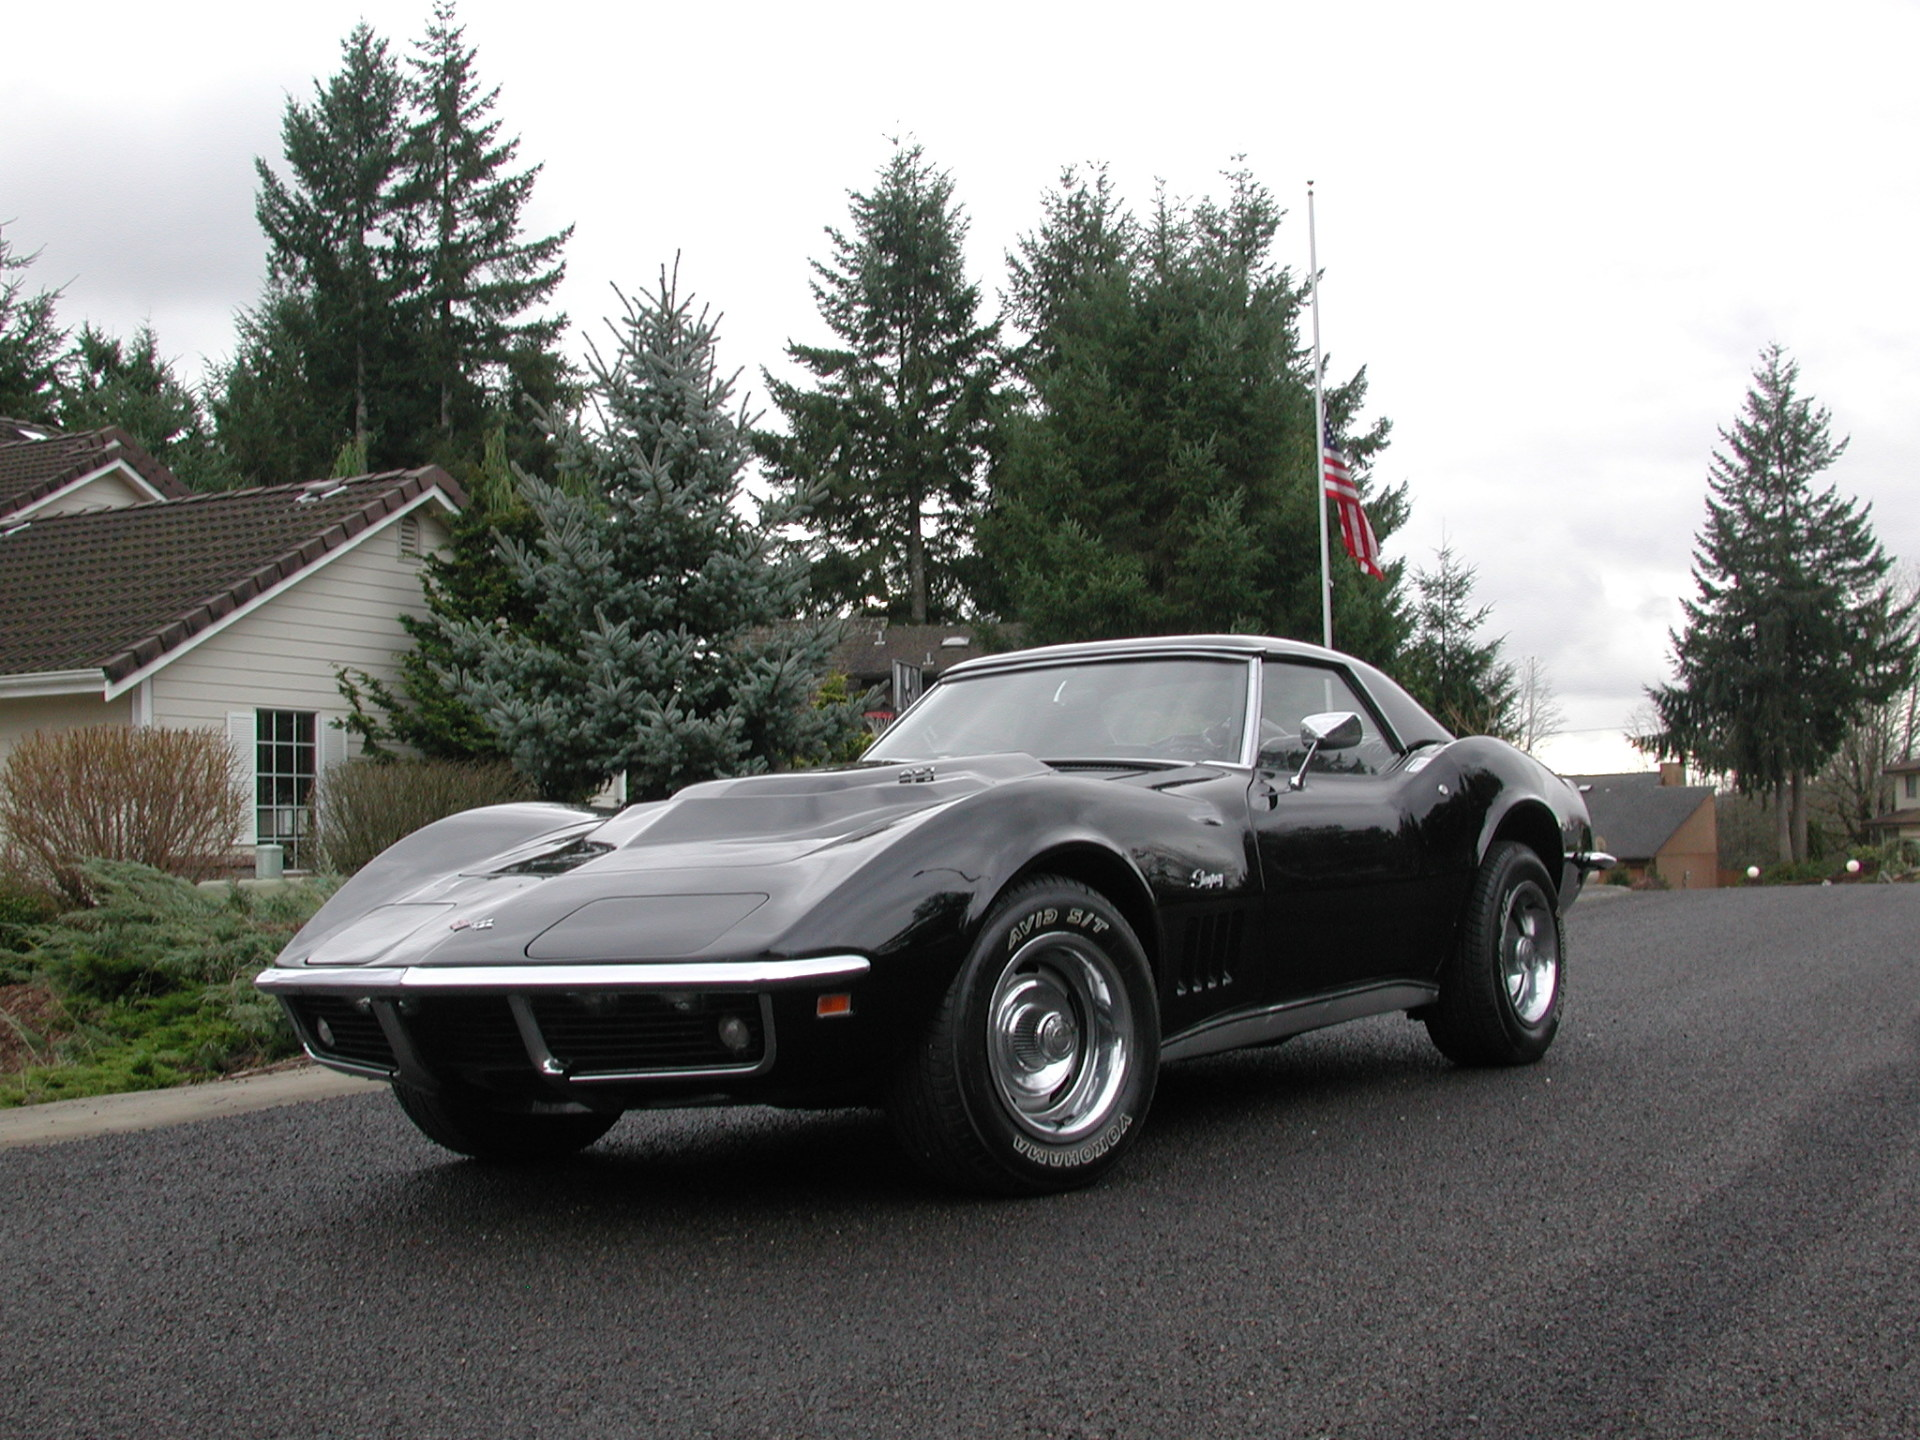 1969 Corvette Convertible 427ci/435hp with Hardtop